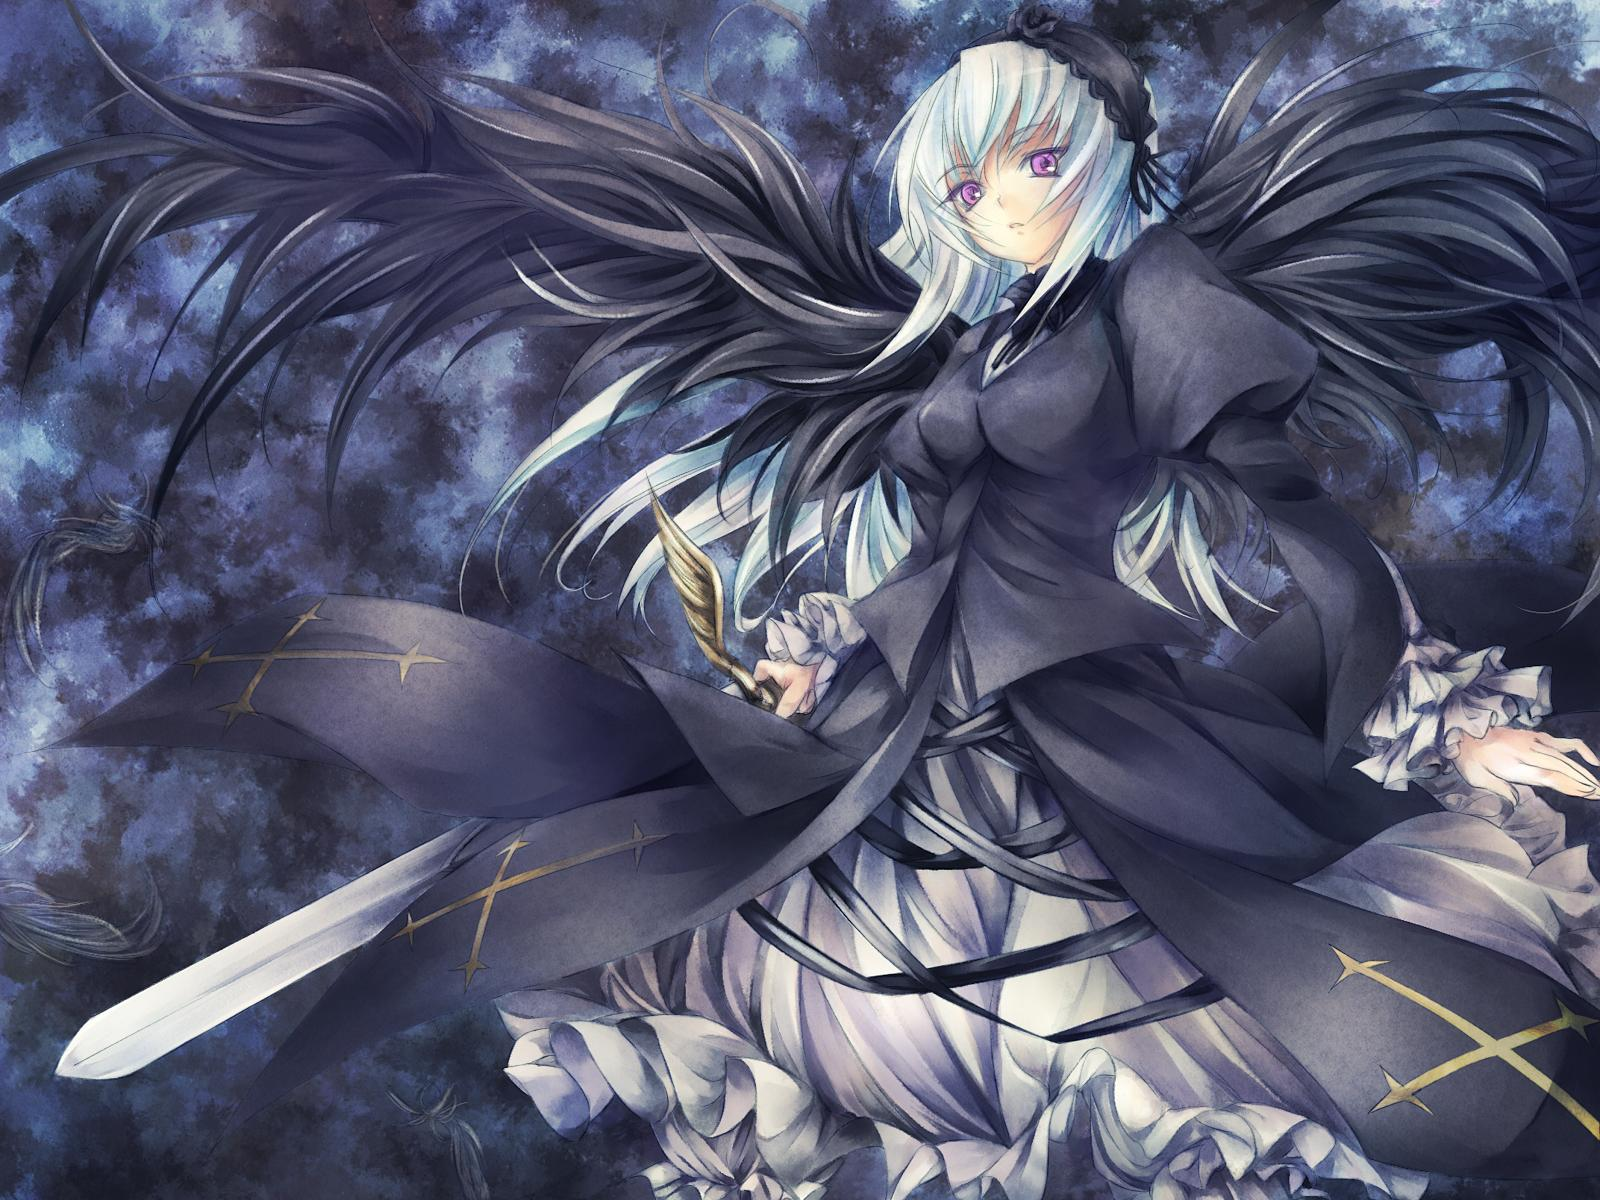 Konachan.com - 43025 goth-loli gothic lolita_fashion pink_eyes rozen_maiden suigintou sword weapon white_hair wings